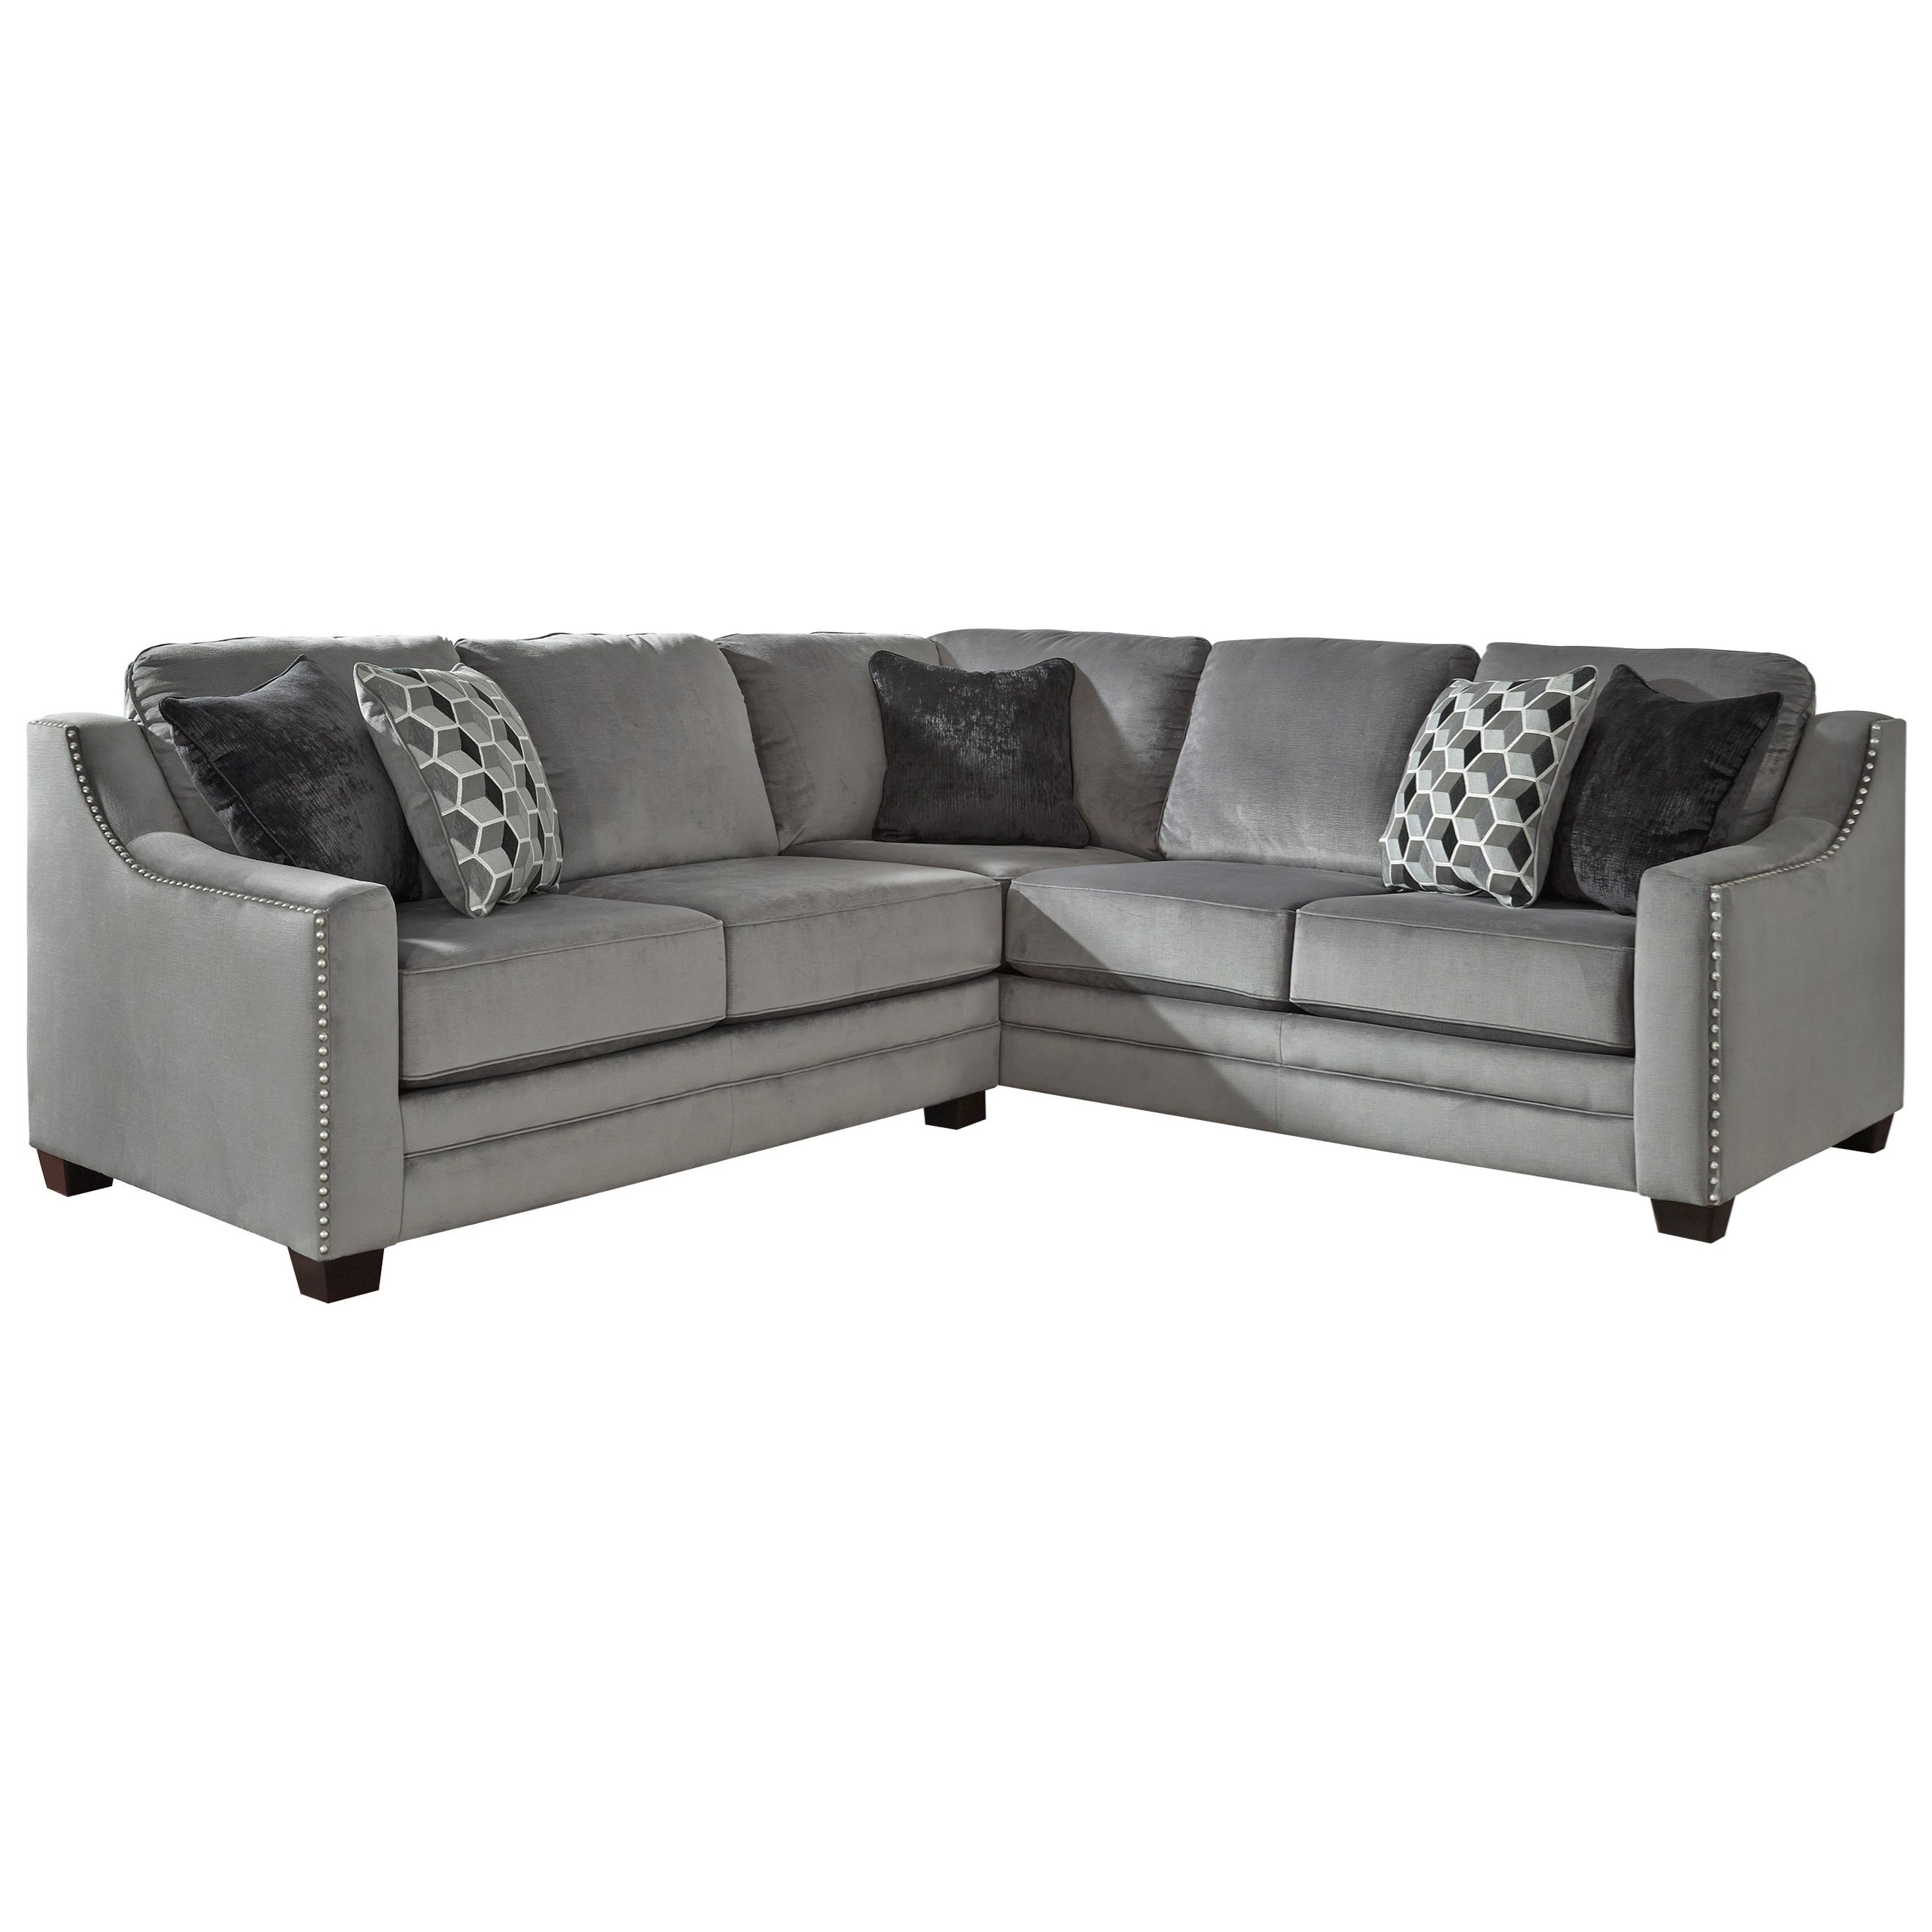 Benchcraft Bicknell 2-Piece Sectional with Left Loveseat - Item Number: 8620455+49